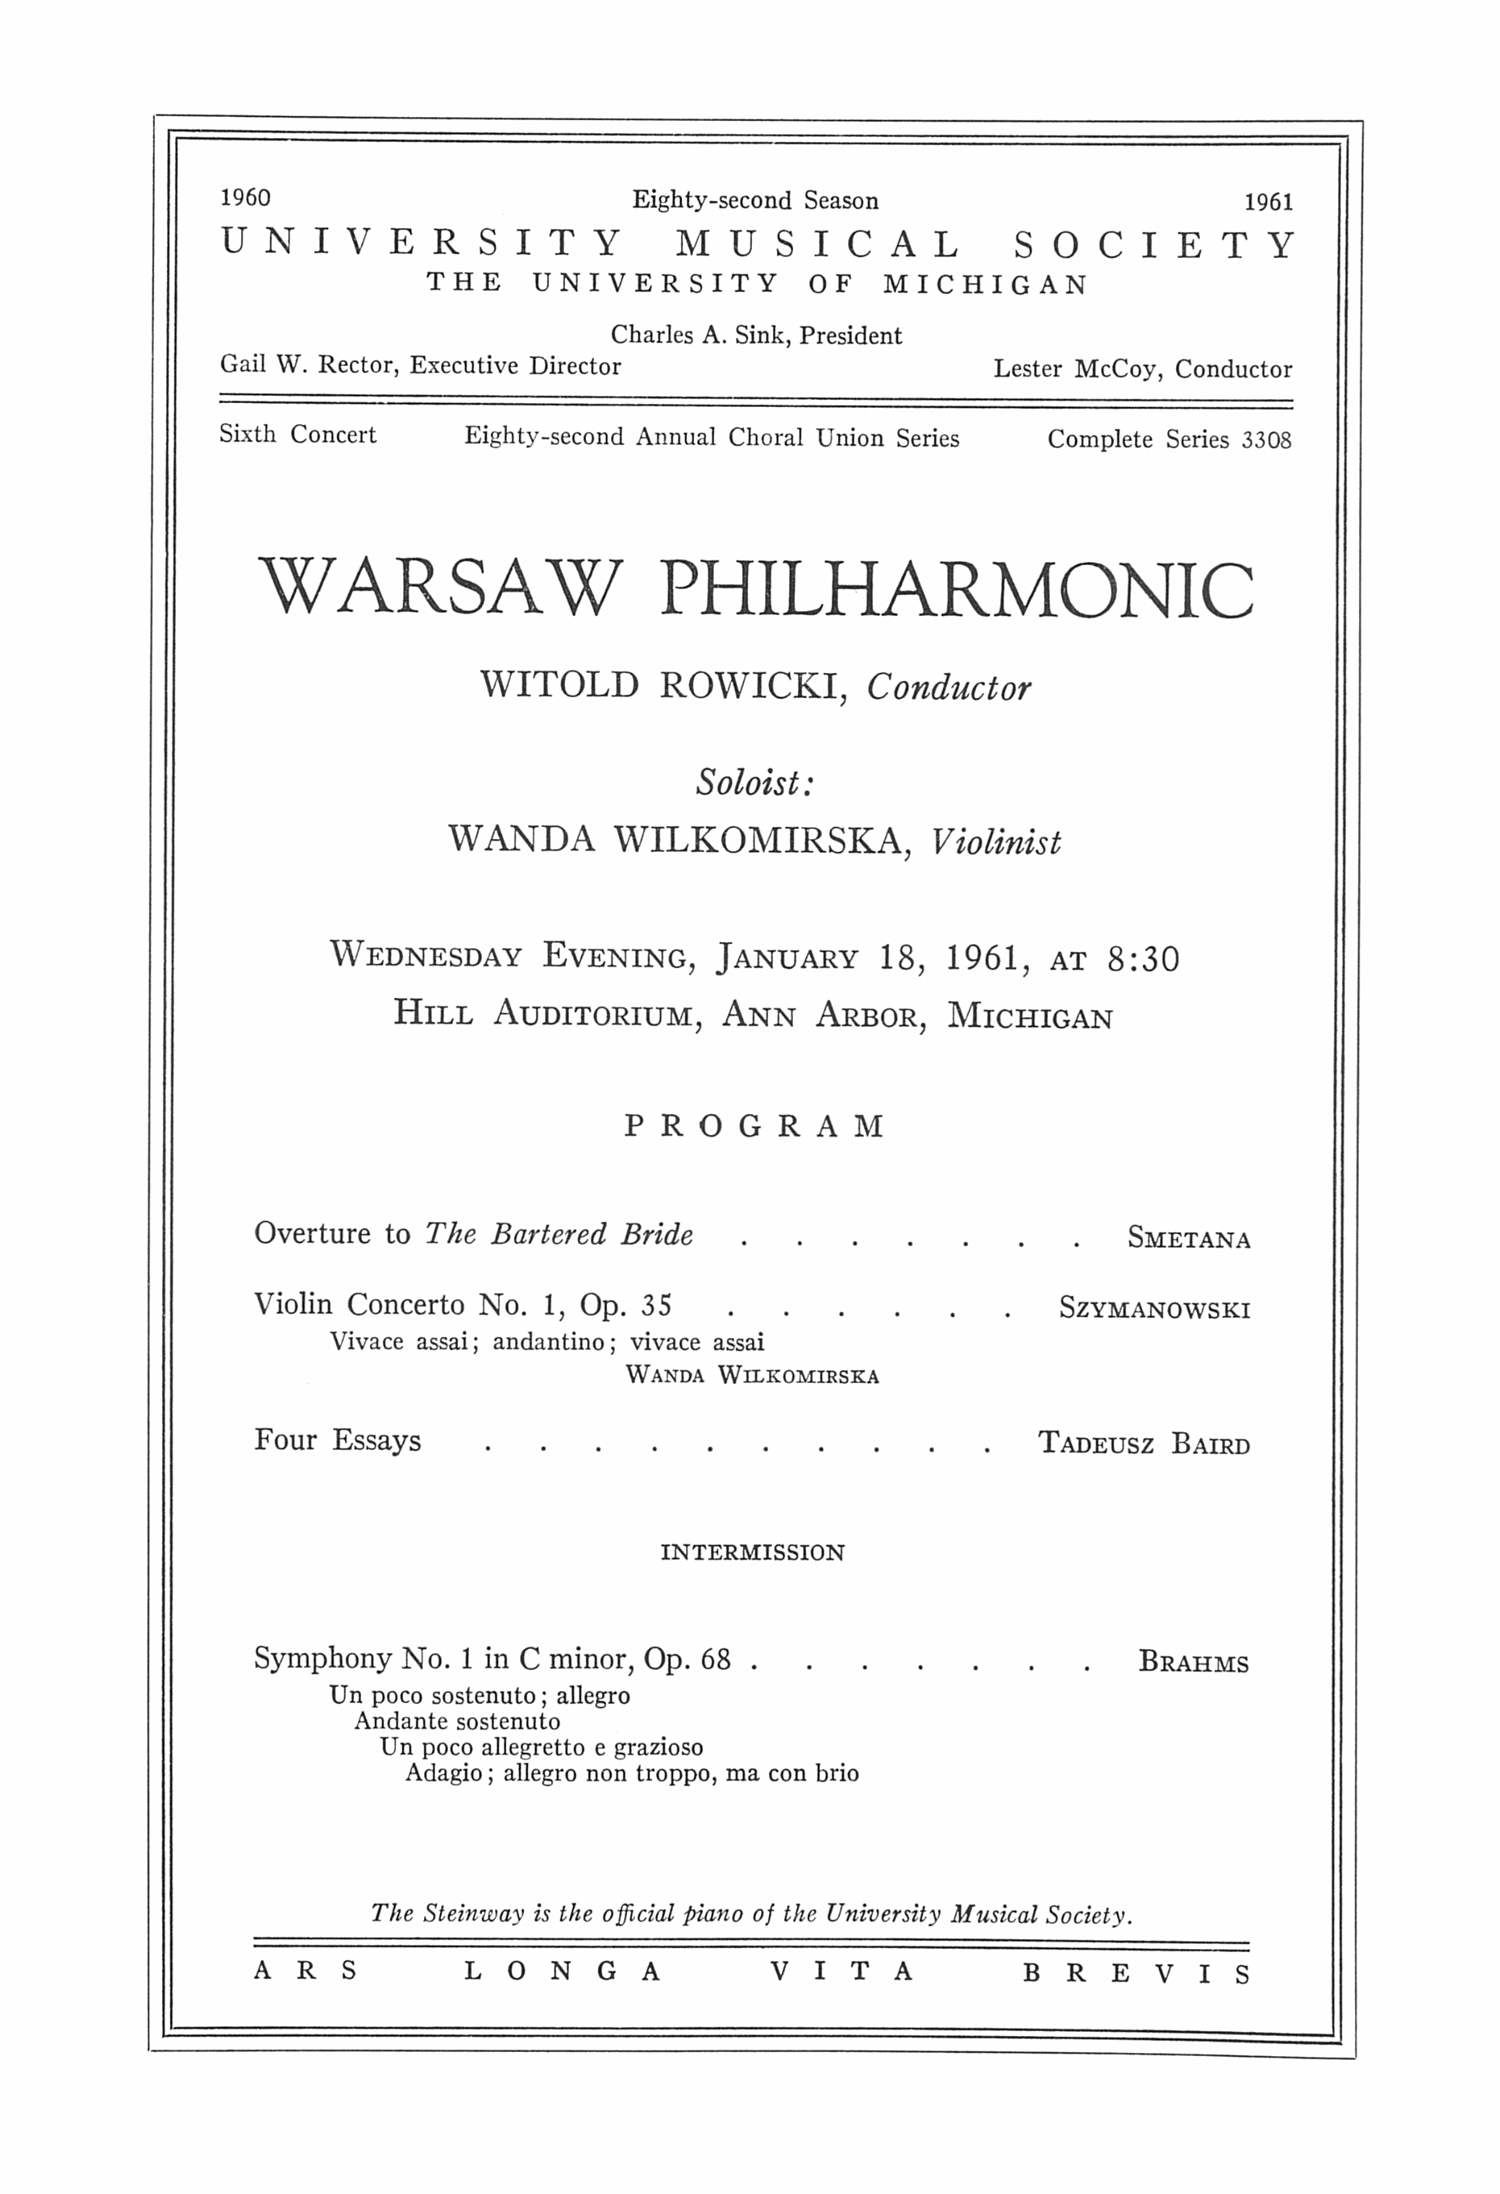 UMS Concert Program, January 18, 1961: Warsaw Philharmonic -- Witold Rowicki image